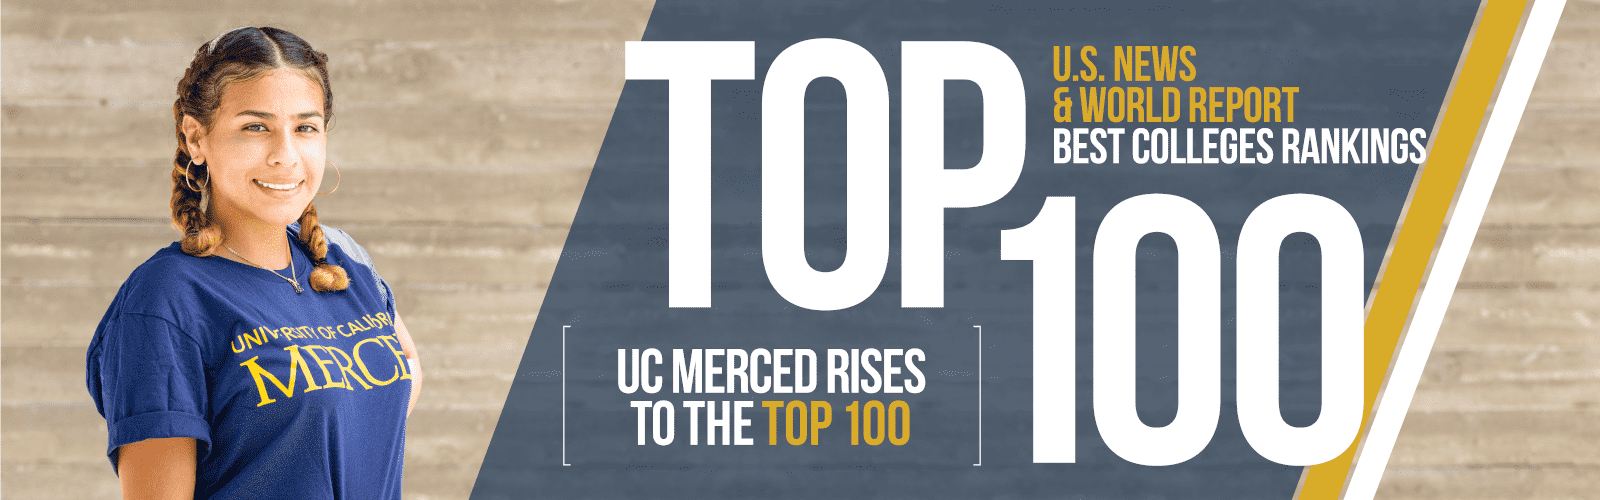 US News and world report best colleges rankings include UC Merced